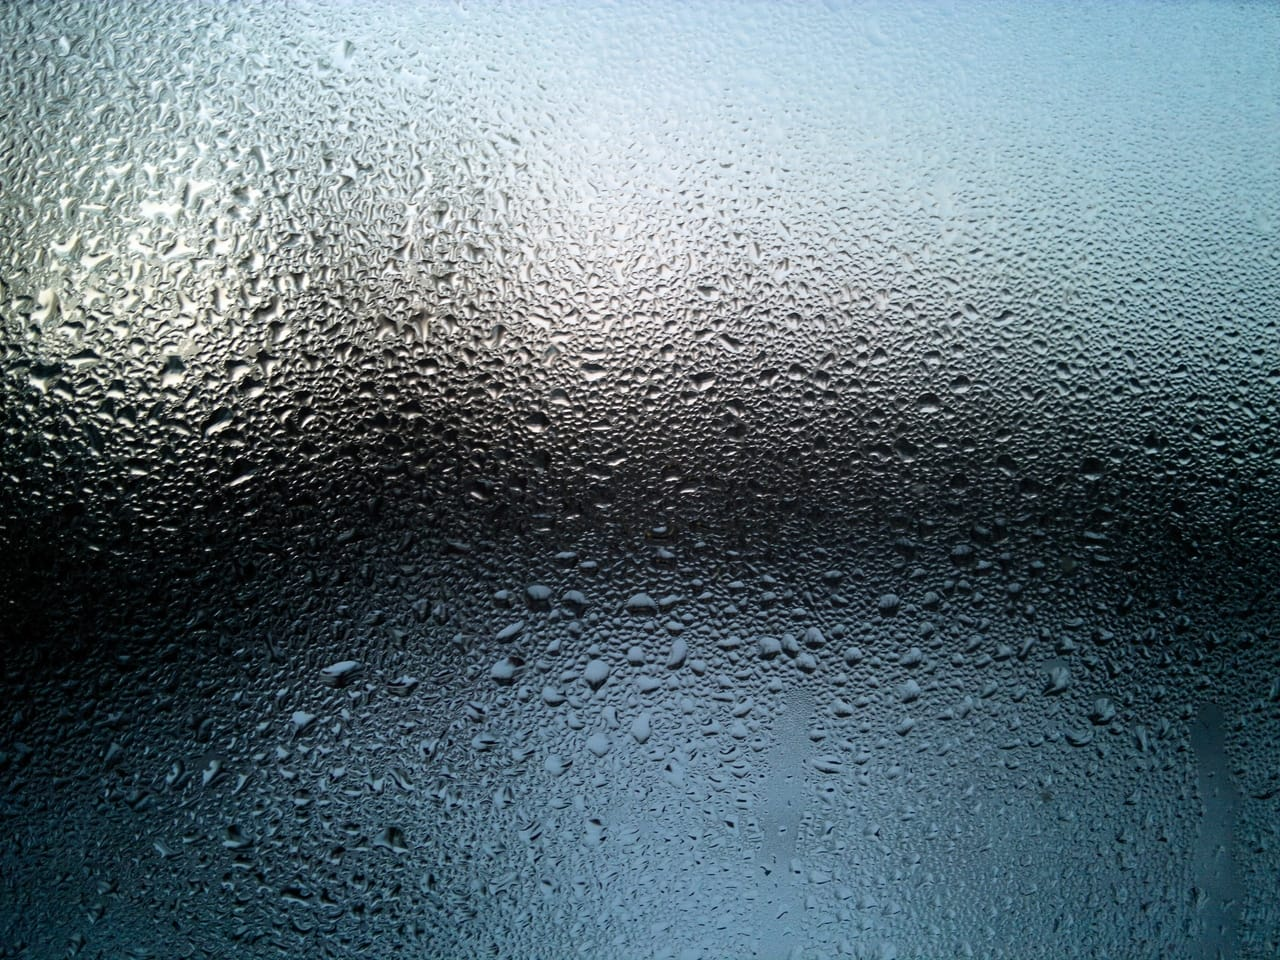 moisture-on-window